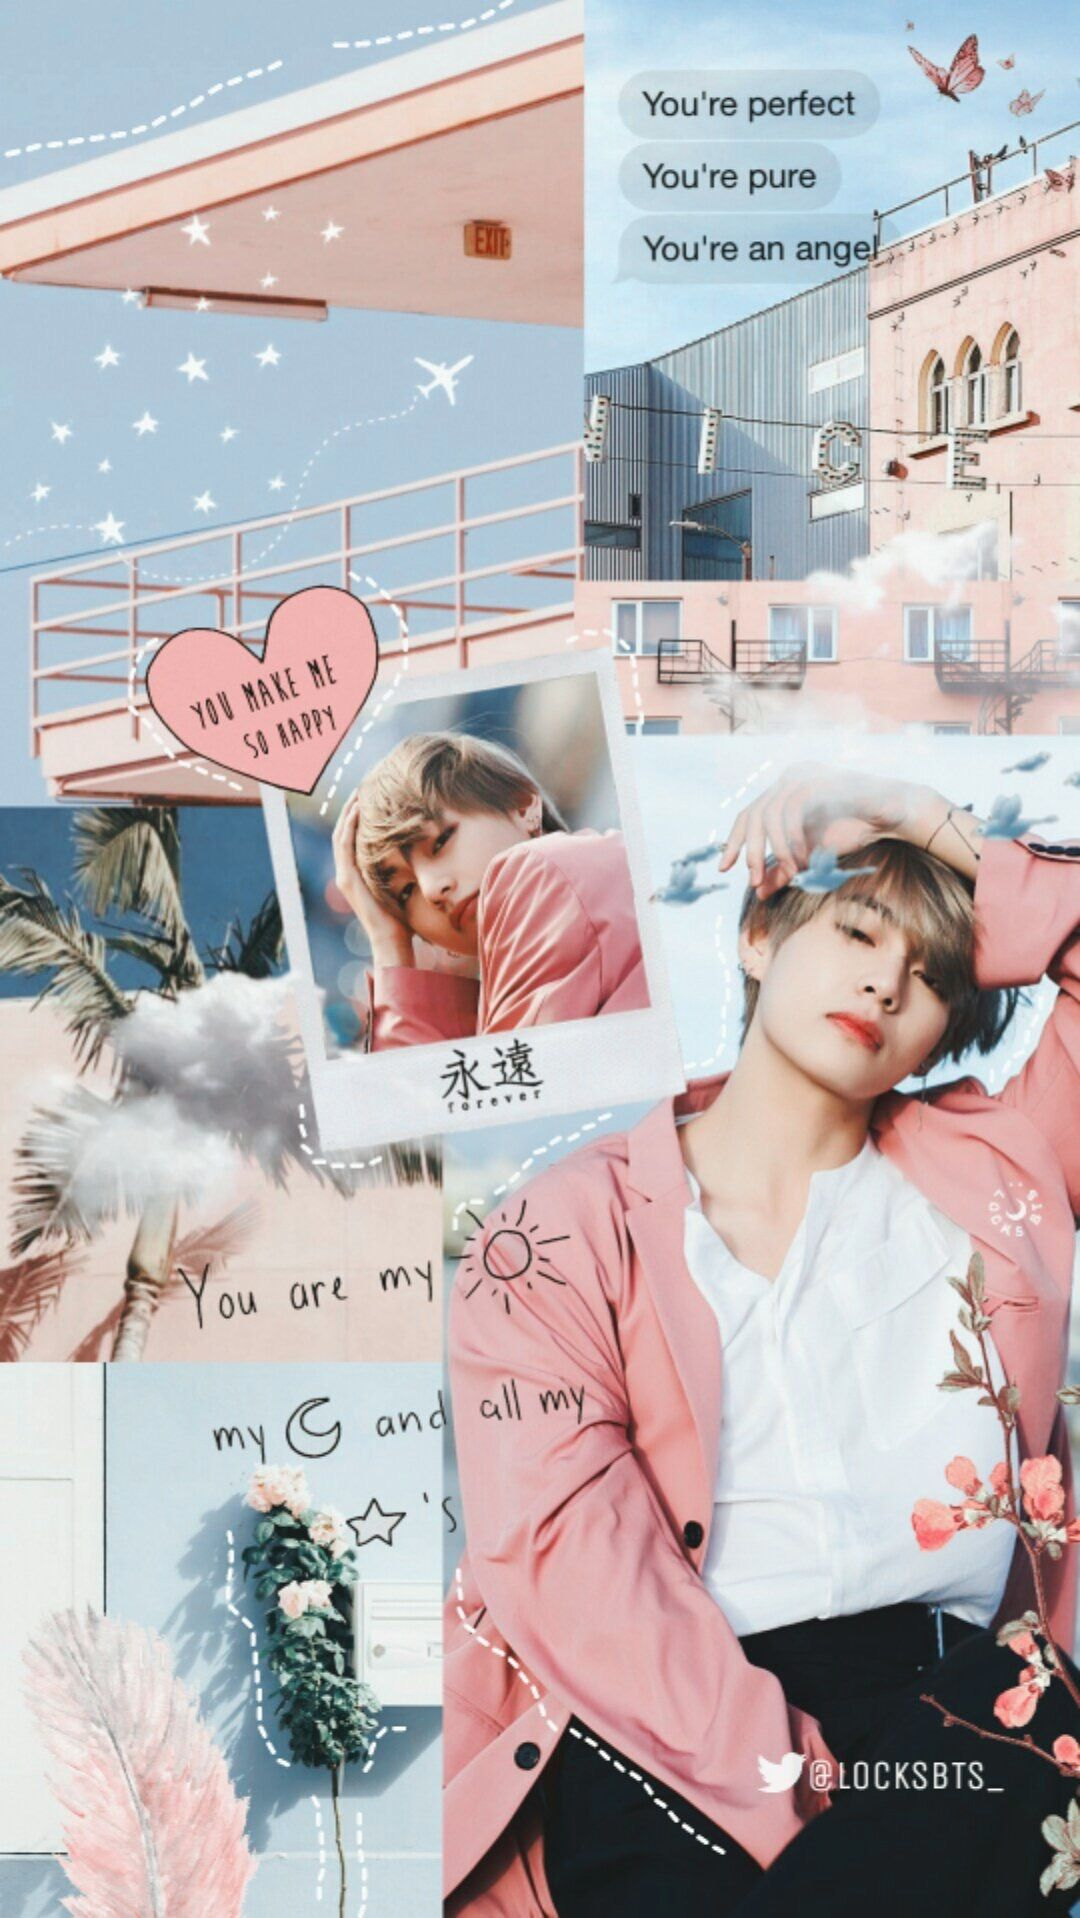 Pin By Lshlsntg On Wallpapers In 2018 Bts Bts Wallpaper Bts Taehyung